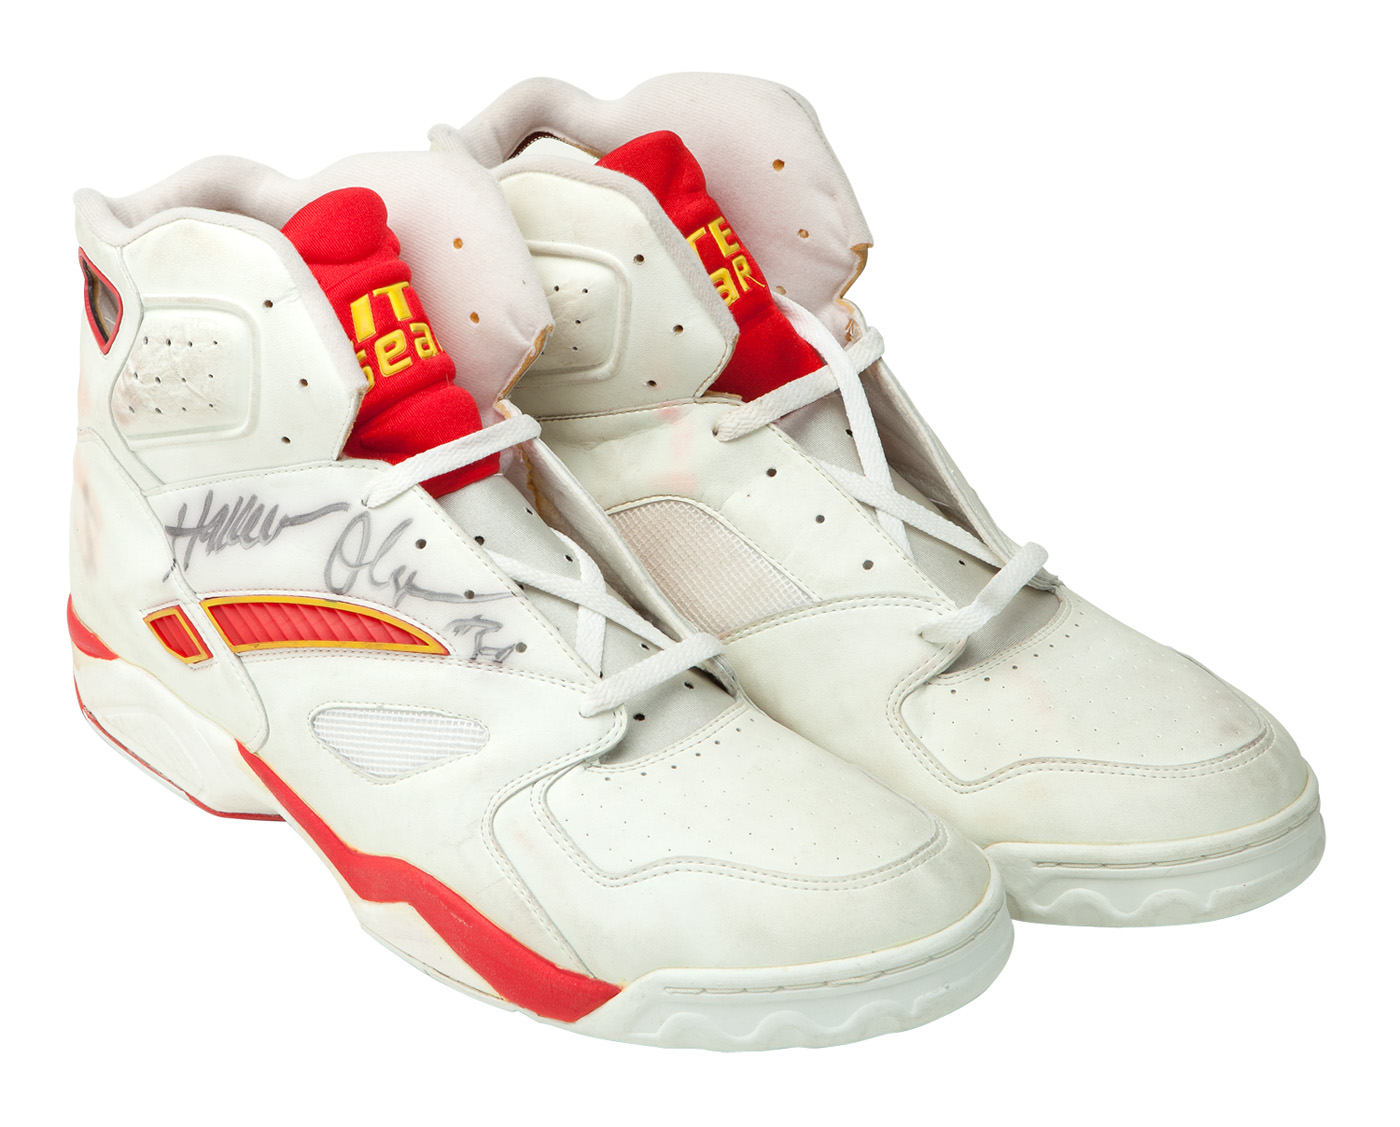 HAKEEM OLAJUWON SIGNED GAME WORN LITE GEAR SHOES WITH THE DREAM